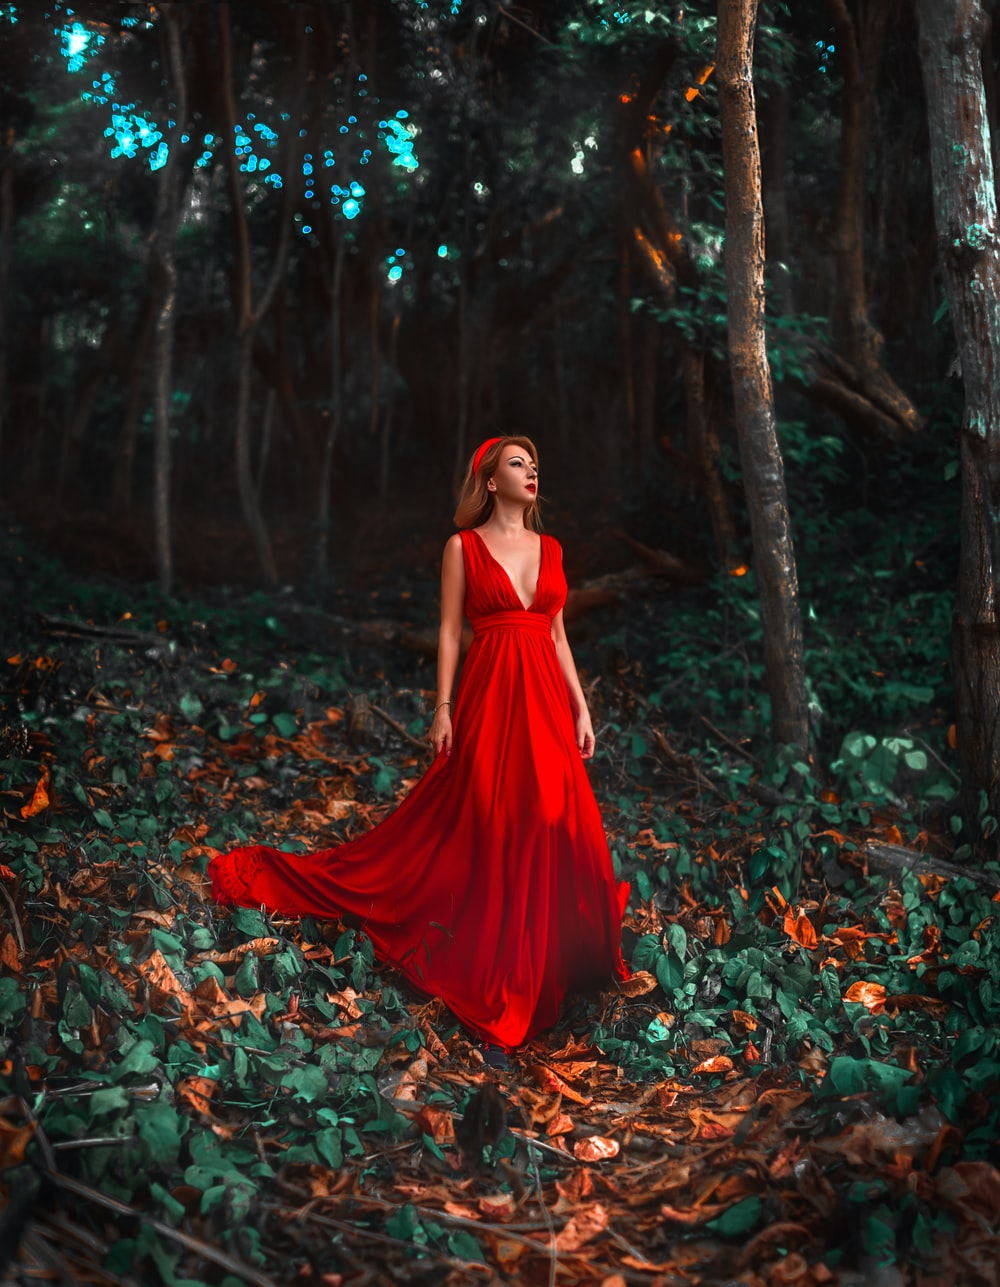 woman in red dress standing on dried leaves